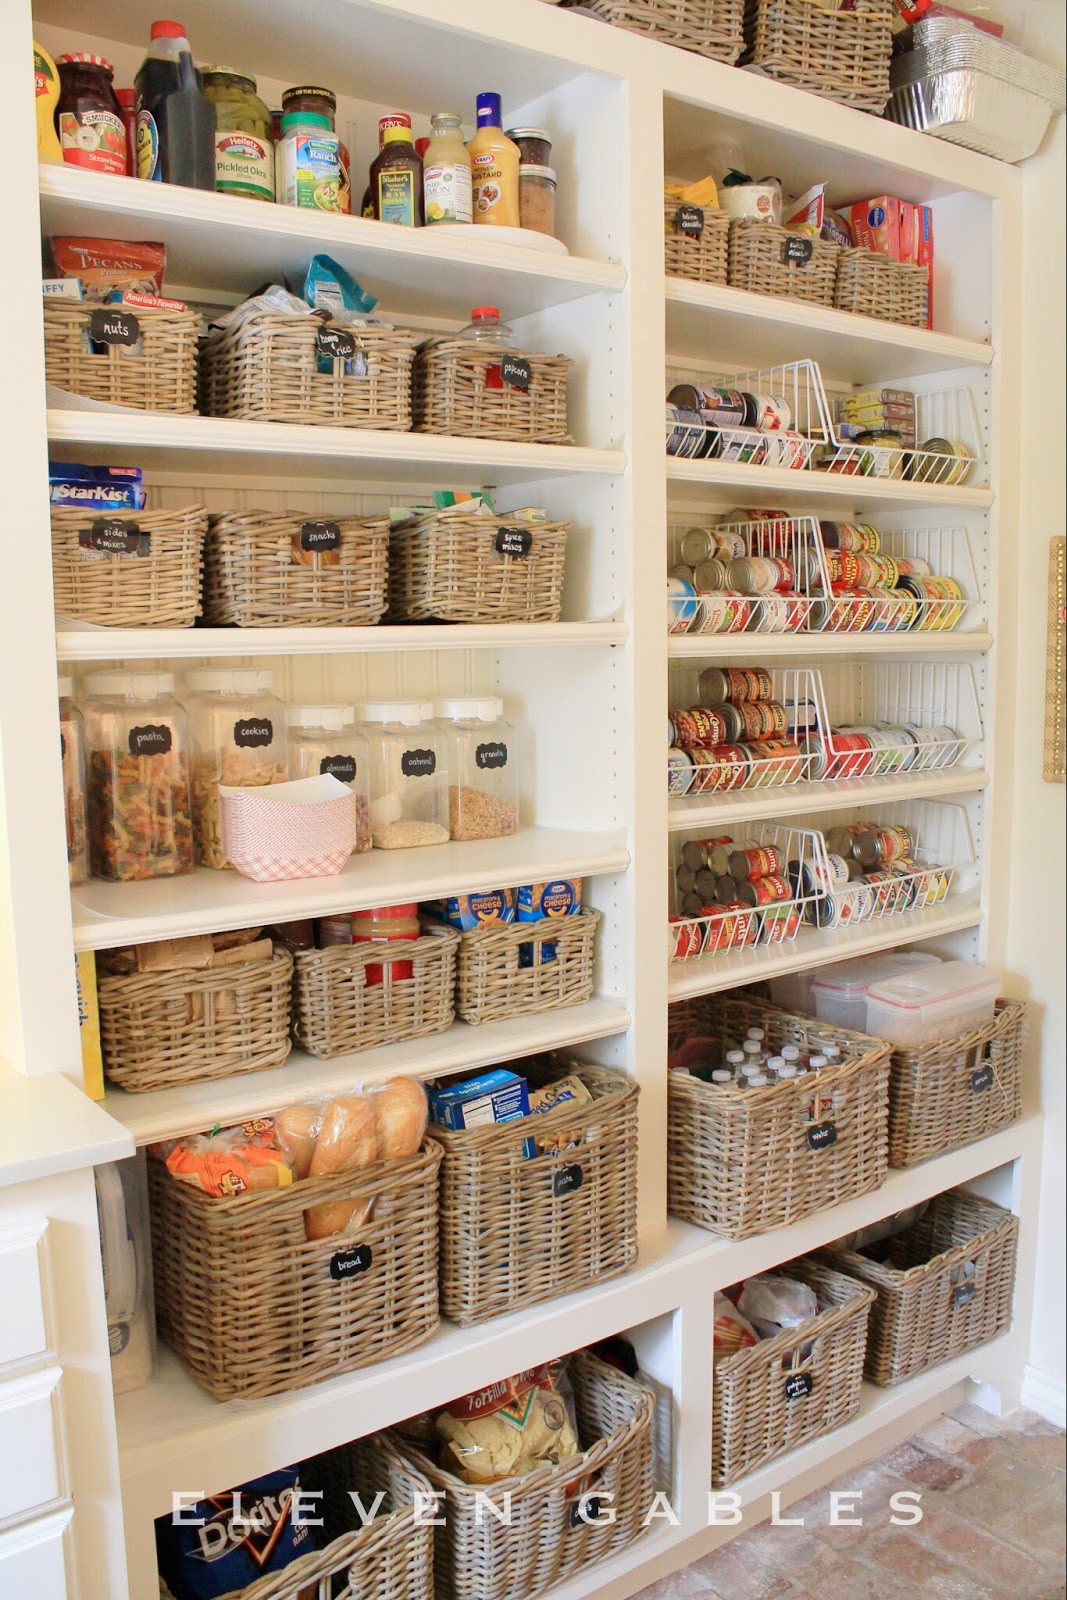 Best ideas about Organizing A Pantry . Save or Pin 15 Kitchen Organization Ideas Now.